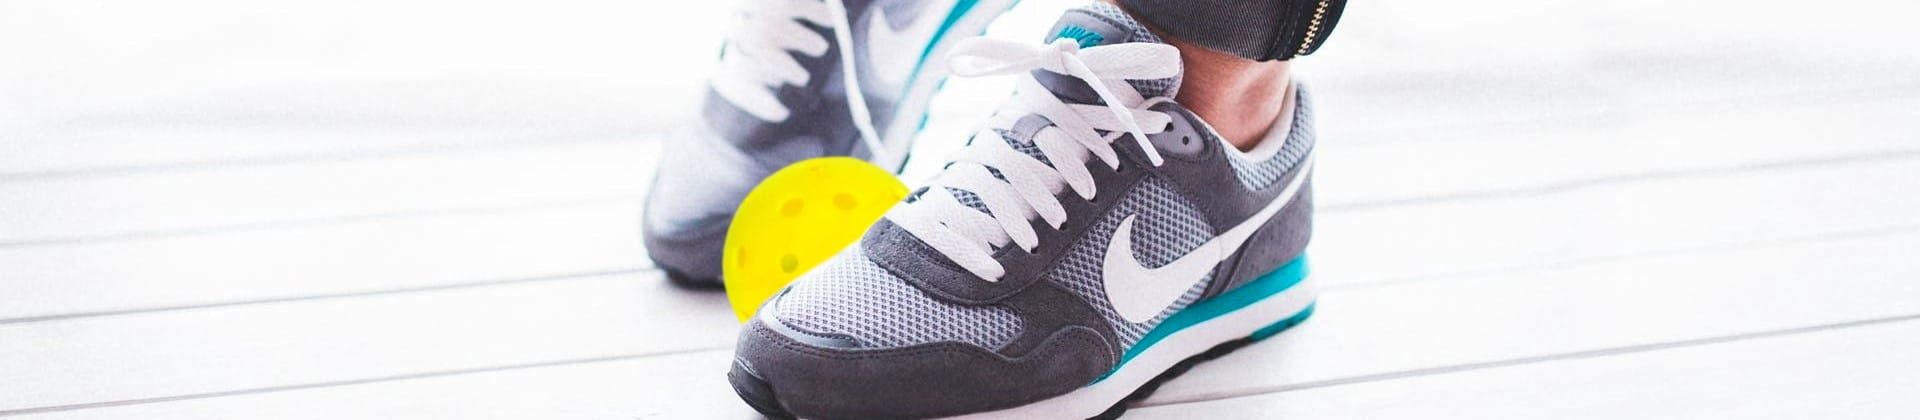 Best Shoes For Pickleball Reviewed in Detail